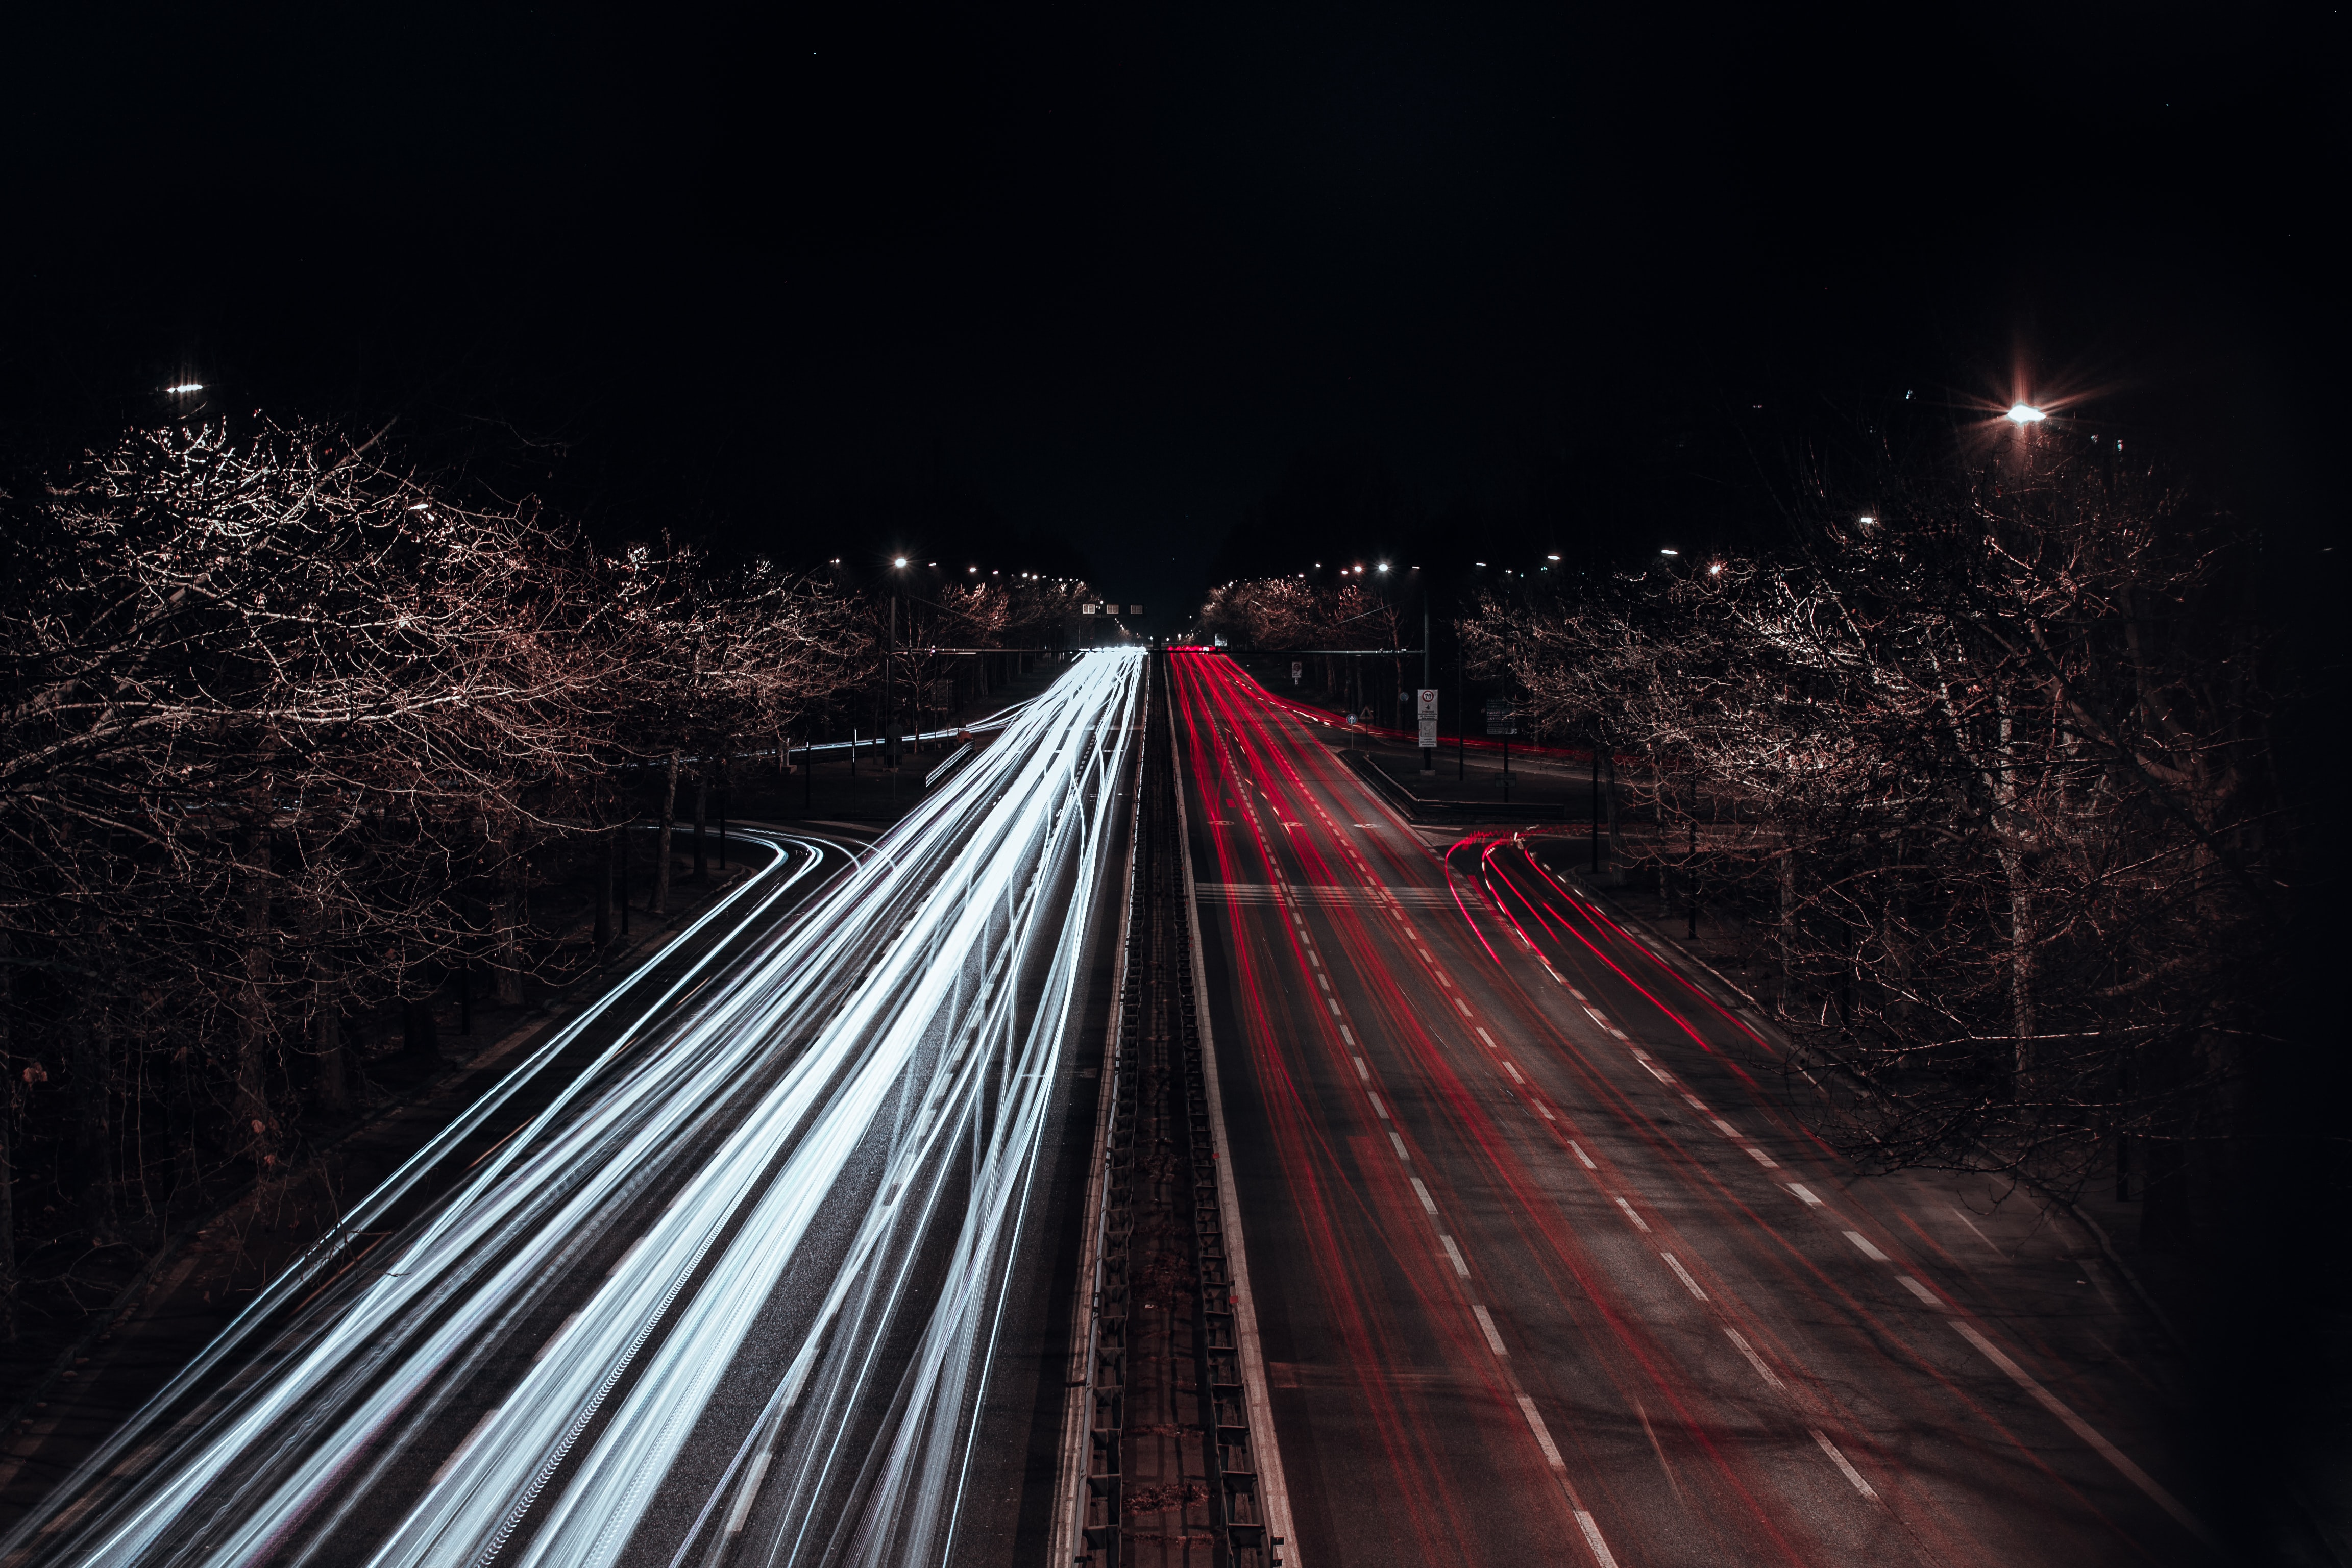 timelapse photography of cars during nighttime